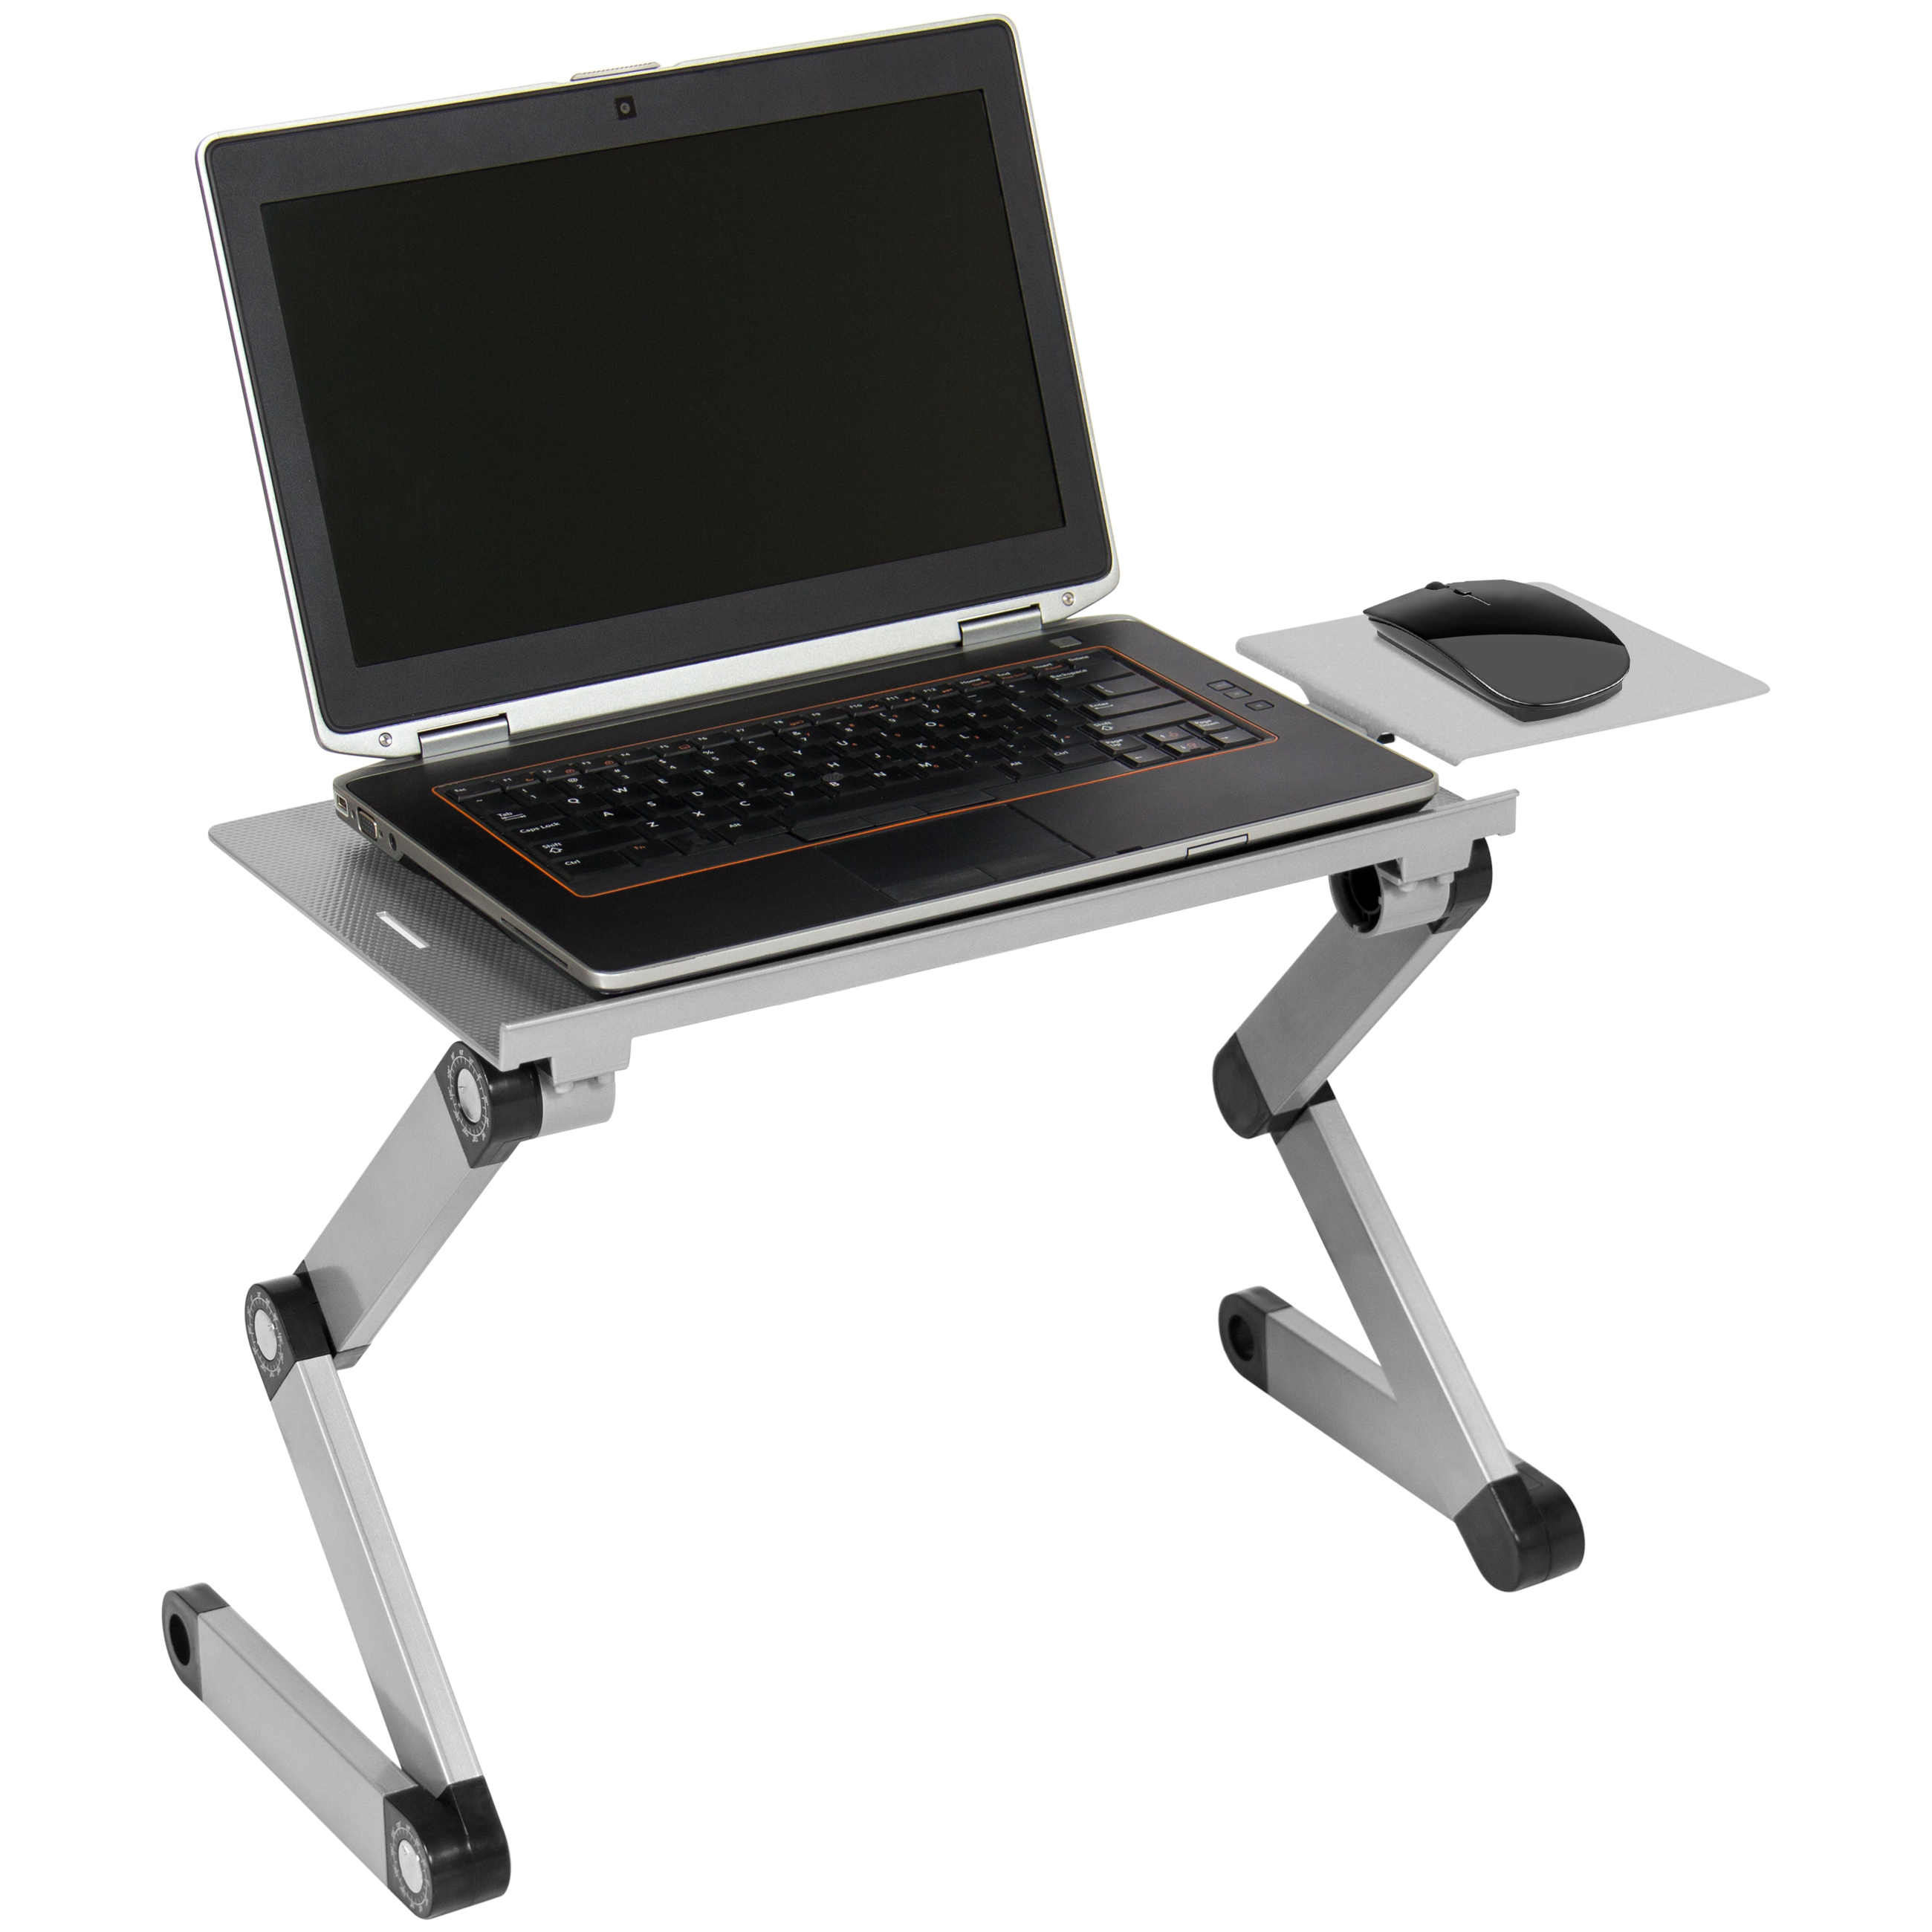 Best Choice Products Ergonomic Ventilated Adjustable Laptop Desk Stand for Office or Home w/ CPU Fan, Mouse Pad - Silver